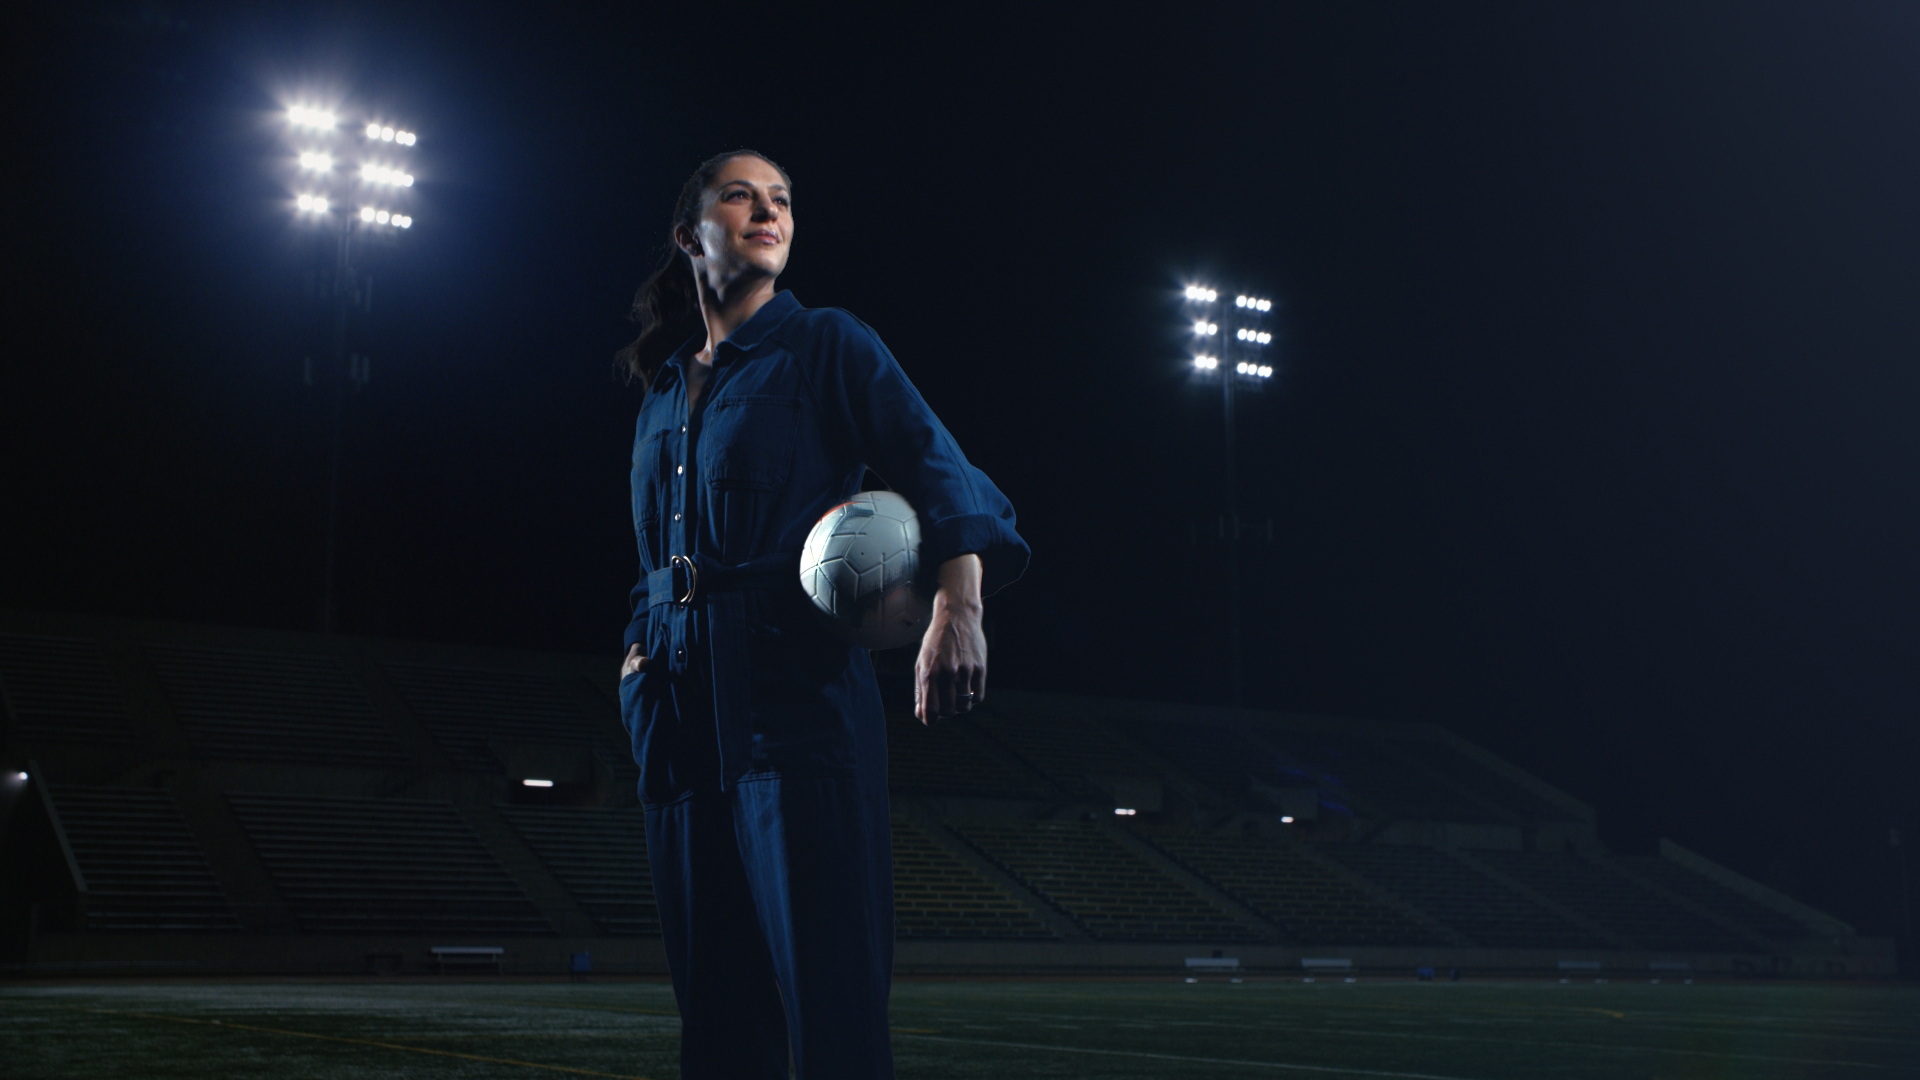 Two-time Olympic gold medalist and two-time FIFA Women's World Cup champion, Carli Lloyd, strikes a powerful stance on the soccer field in her Rosie Reborn jumpsuit. Photo Credit: Cotton Incorporated